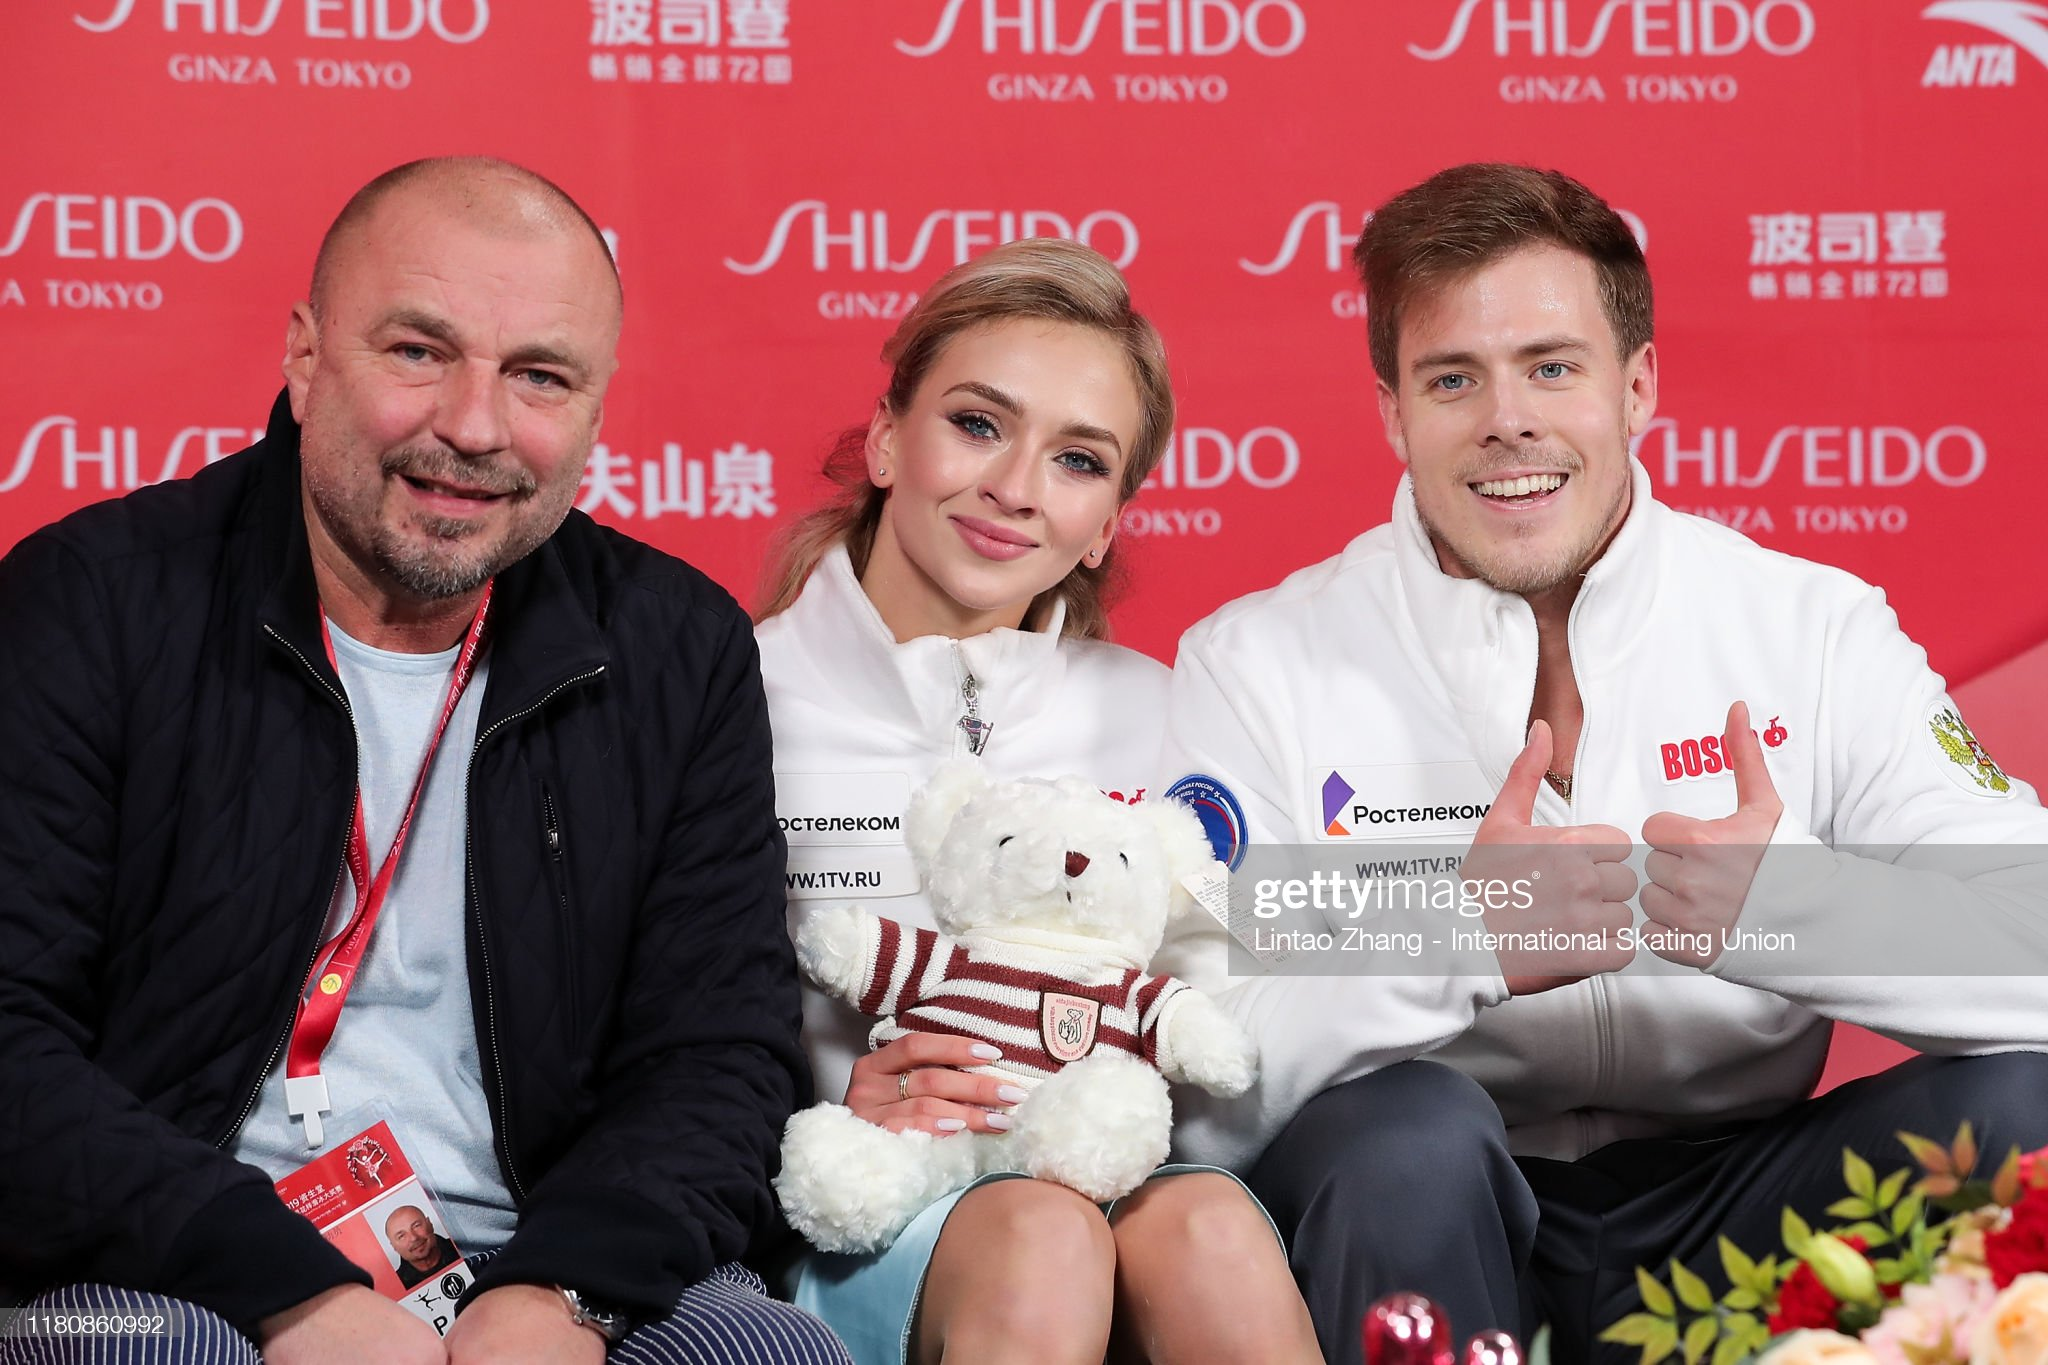 https://media.gettyimages.com/photos/victoria-sinitsina-and-nikita-katsalapov-of-russia-reacts-after-in-picture-id1180860992?s=2048x2048